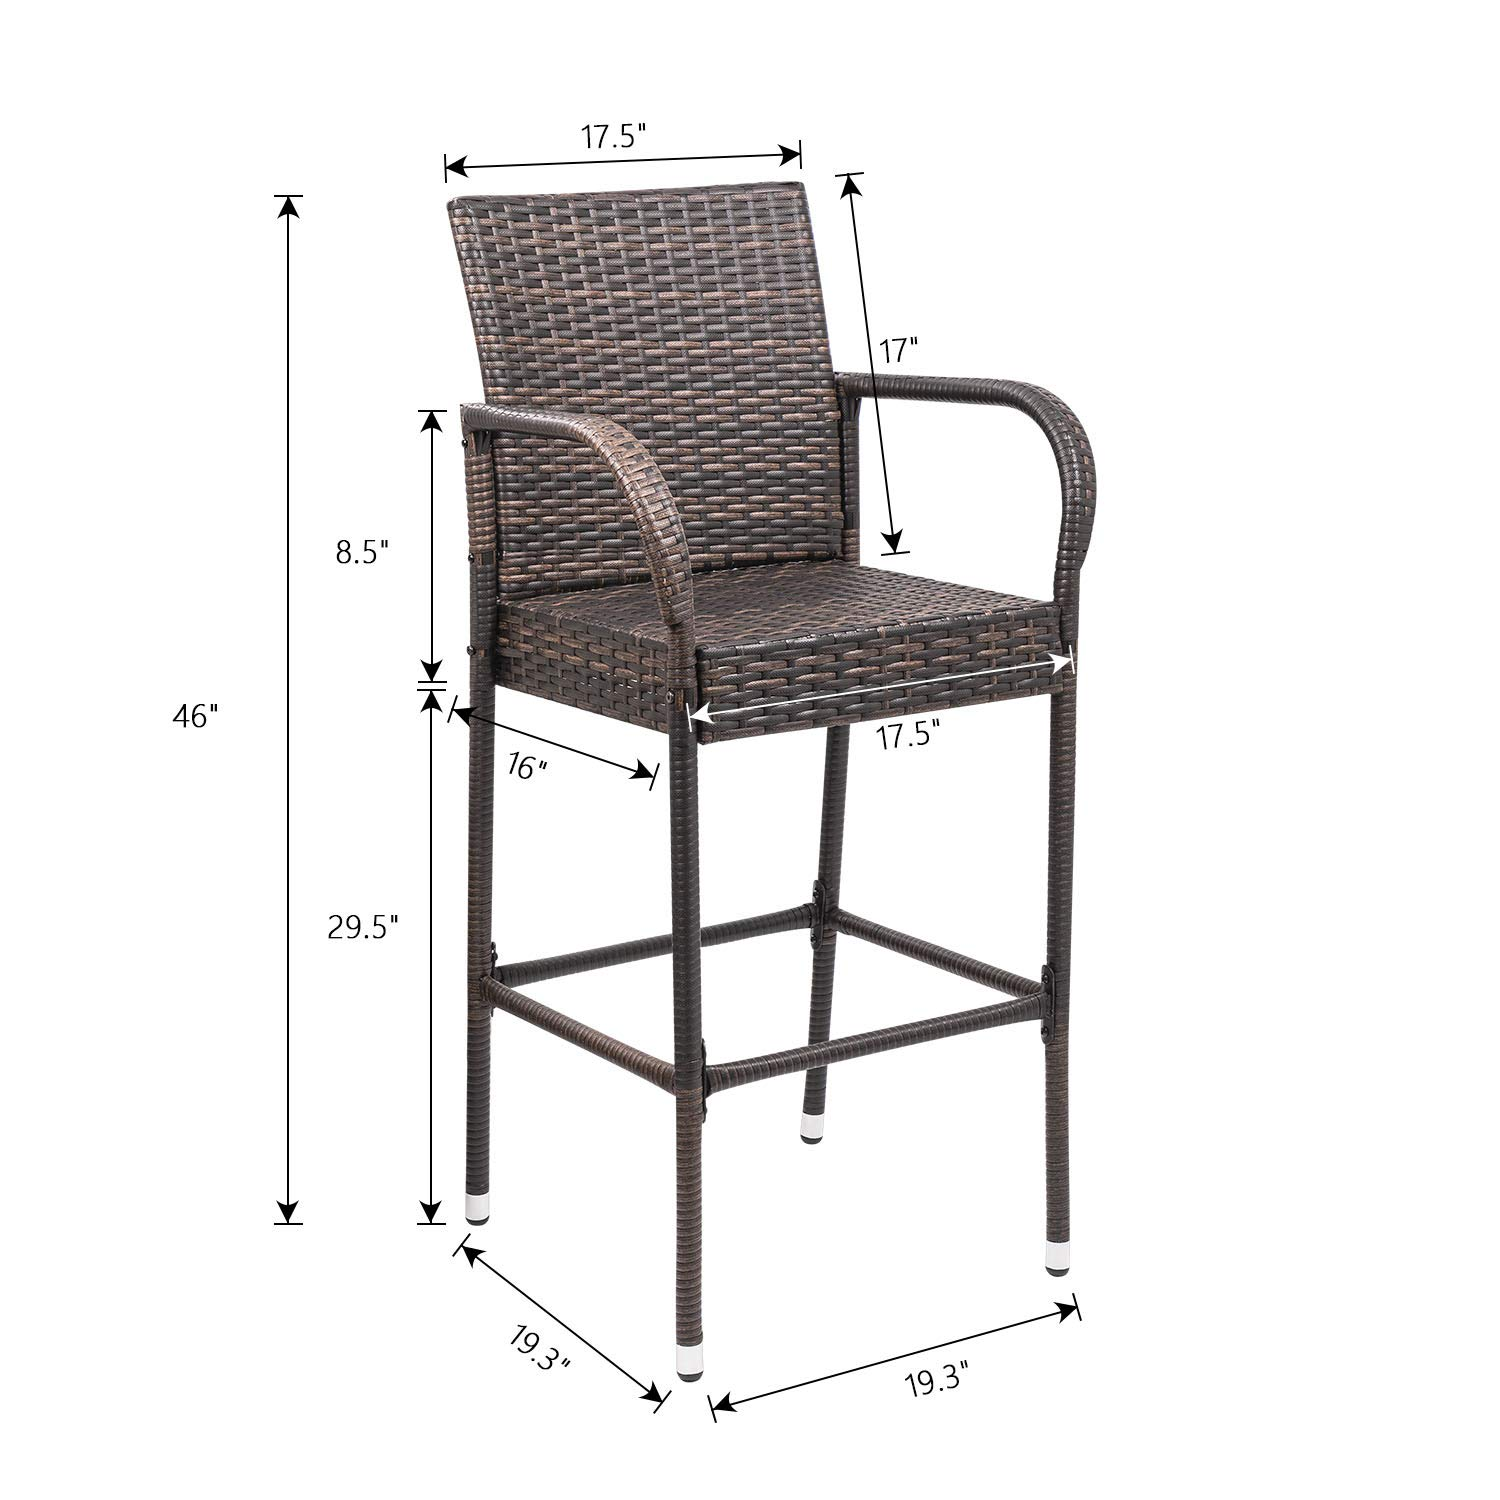 Homall Patio Bar Stools Wicker Barstools Indoor Outdoor Bar Stool Patio Furniture with Footrest and Armrest for Garden Pool Lawn Backyard Set of 2 (Brown) by Homall (Image #6)